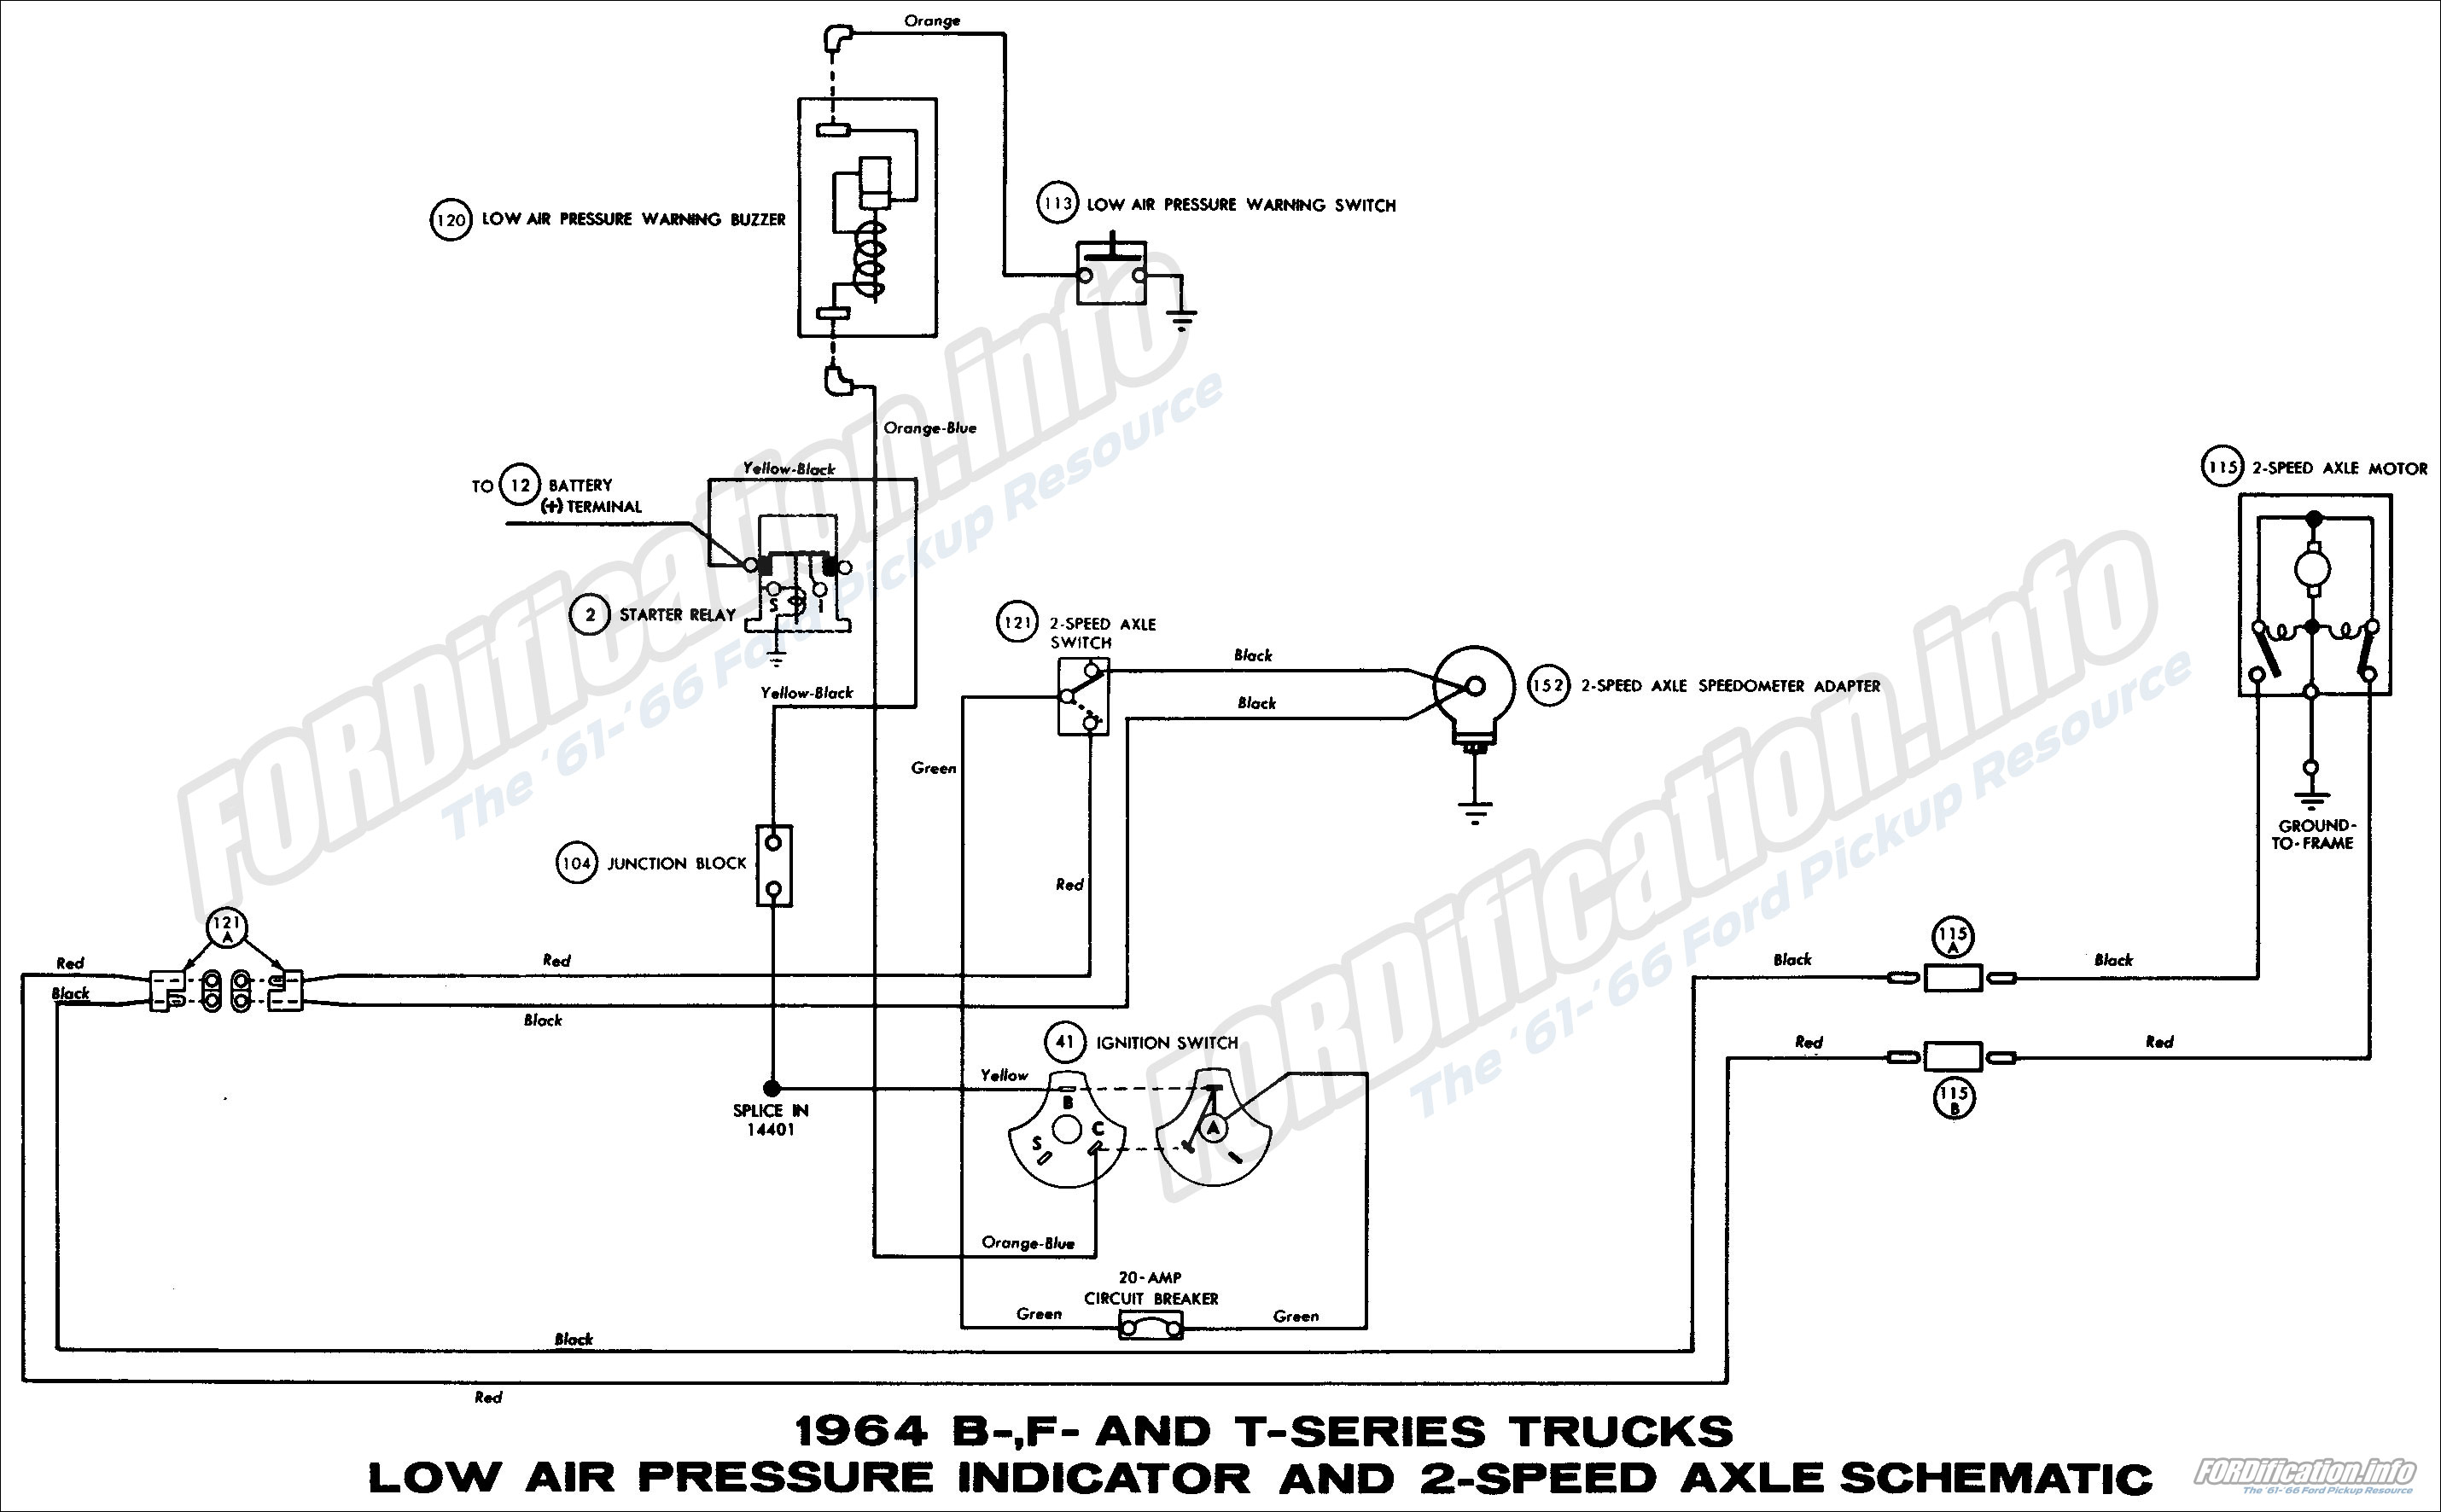 1964_17 1964 ford truck wiring diagrams fordification info the '61 '66 1964 ford wiring diagram at nearapp.co